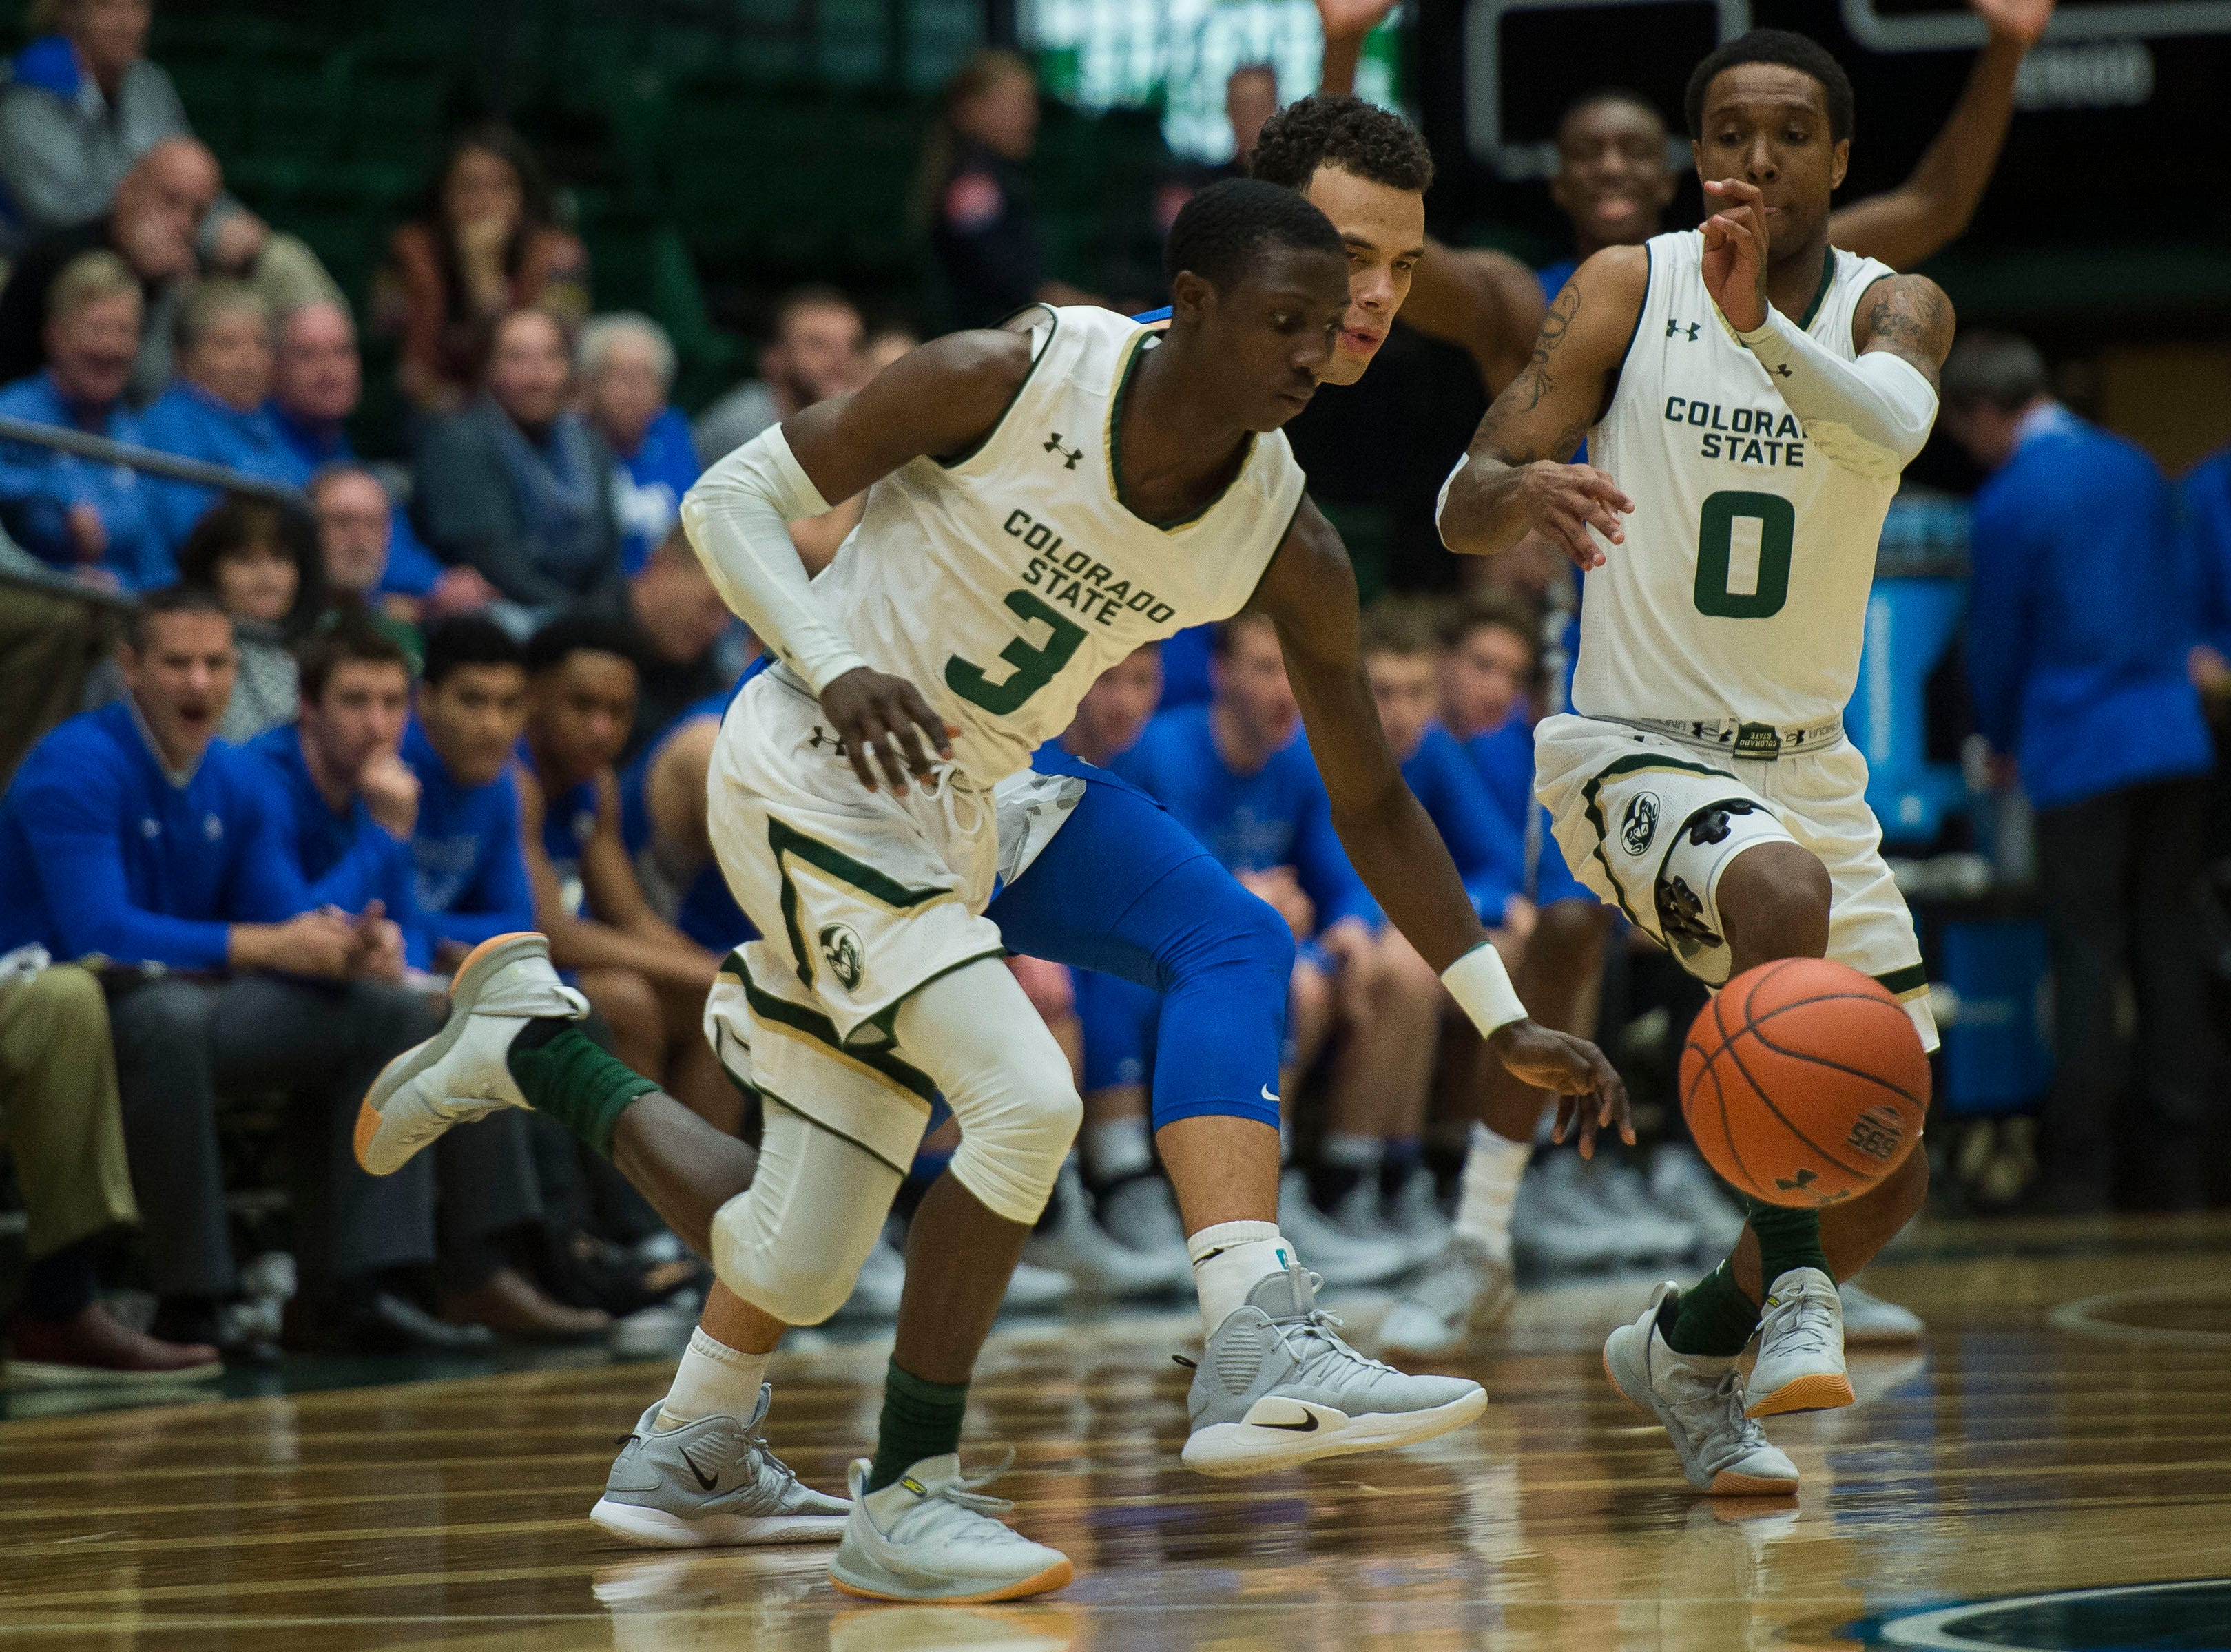 Colorado State University freshman guard Kendle Moore (3) steals the ball from Air Force Academy junior guard Sid Tomes (3) on Tuesday, Jan. 8, 2019, at Moby Arena in Fort Collins, Colo.